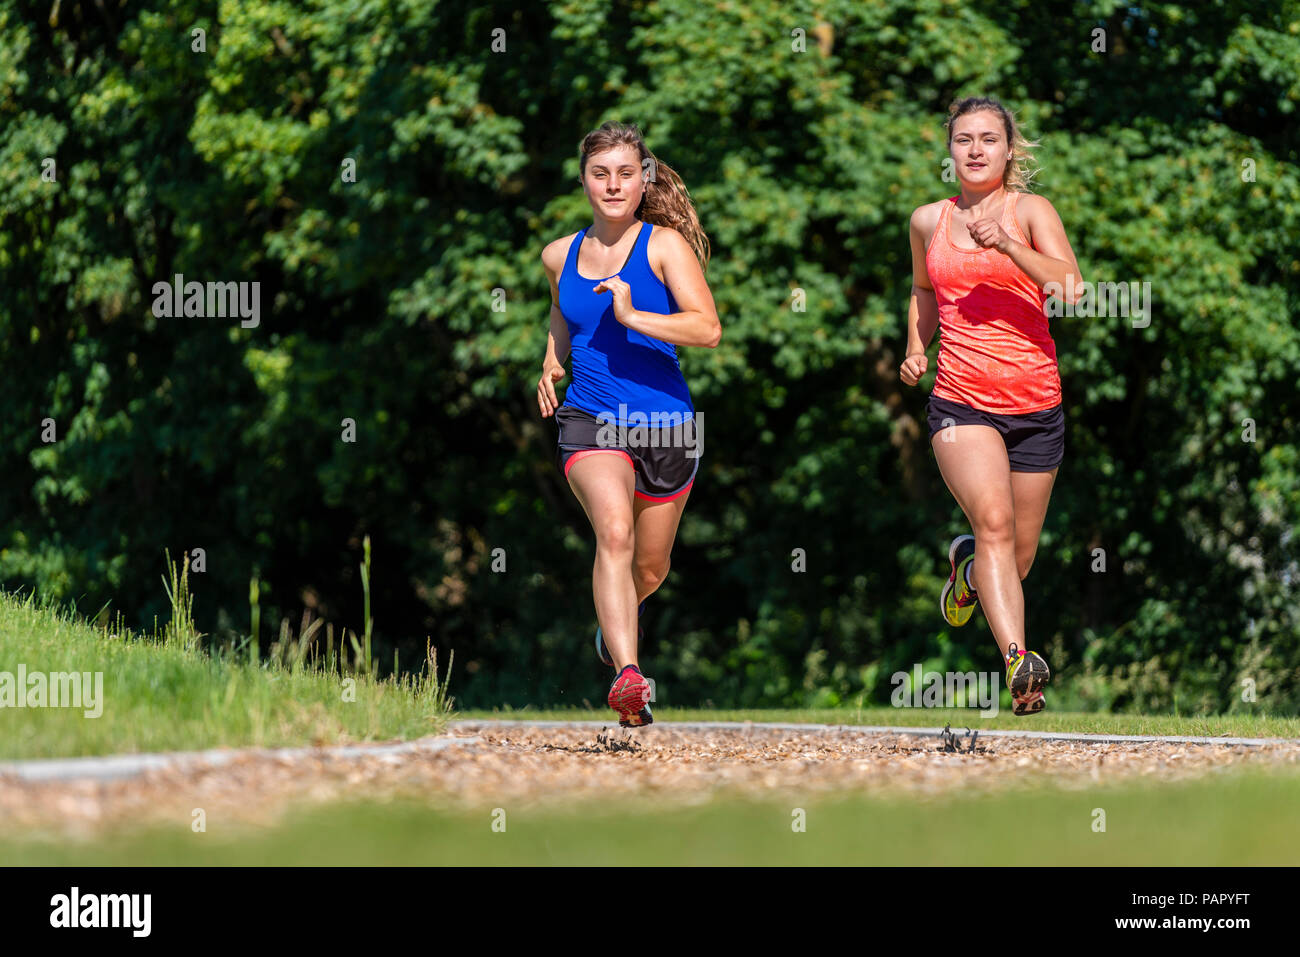 Female joggers on woodchip trail - Stock Image